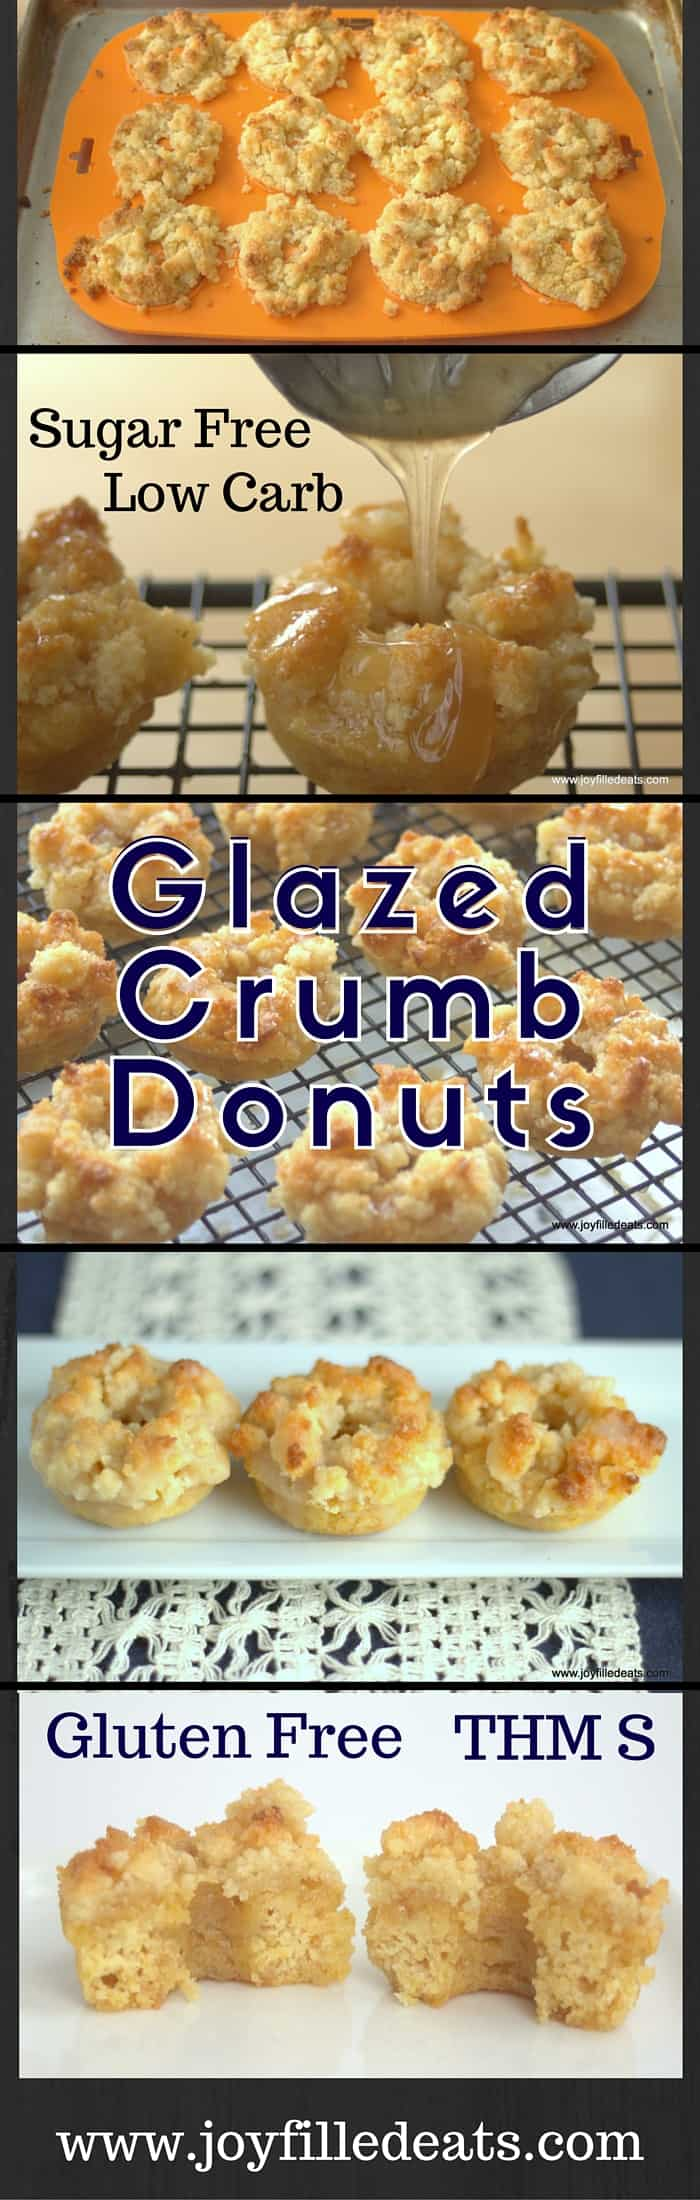 Glazed Crumb Donuts - a moist cakey donut topped with crumbs and covered with a sweet glaze. Low Carb, Sugar-Grain-Gluten Free, & THM S.